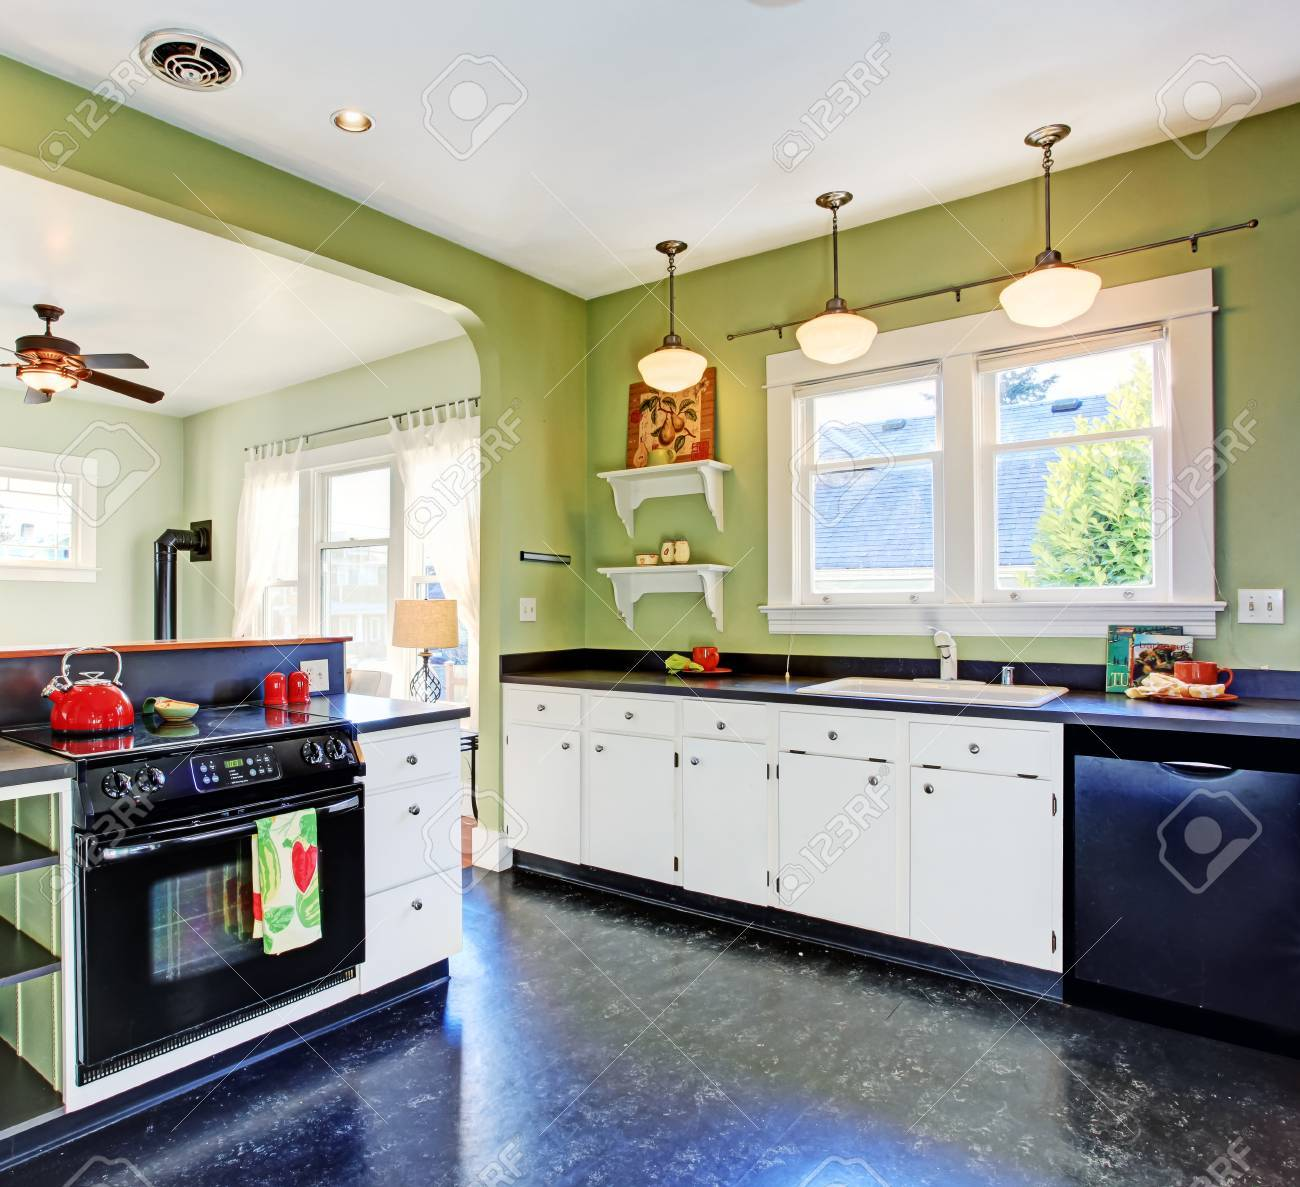 Kitchen Room With Green Walls White Cabinets And Black Appliances